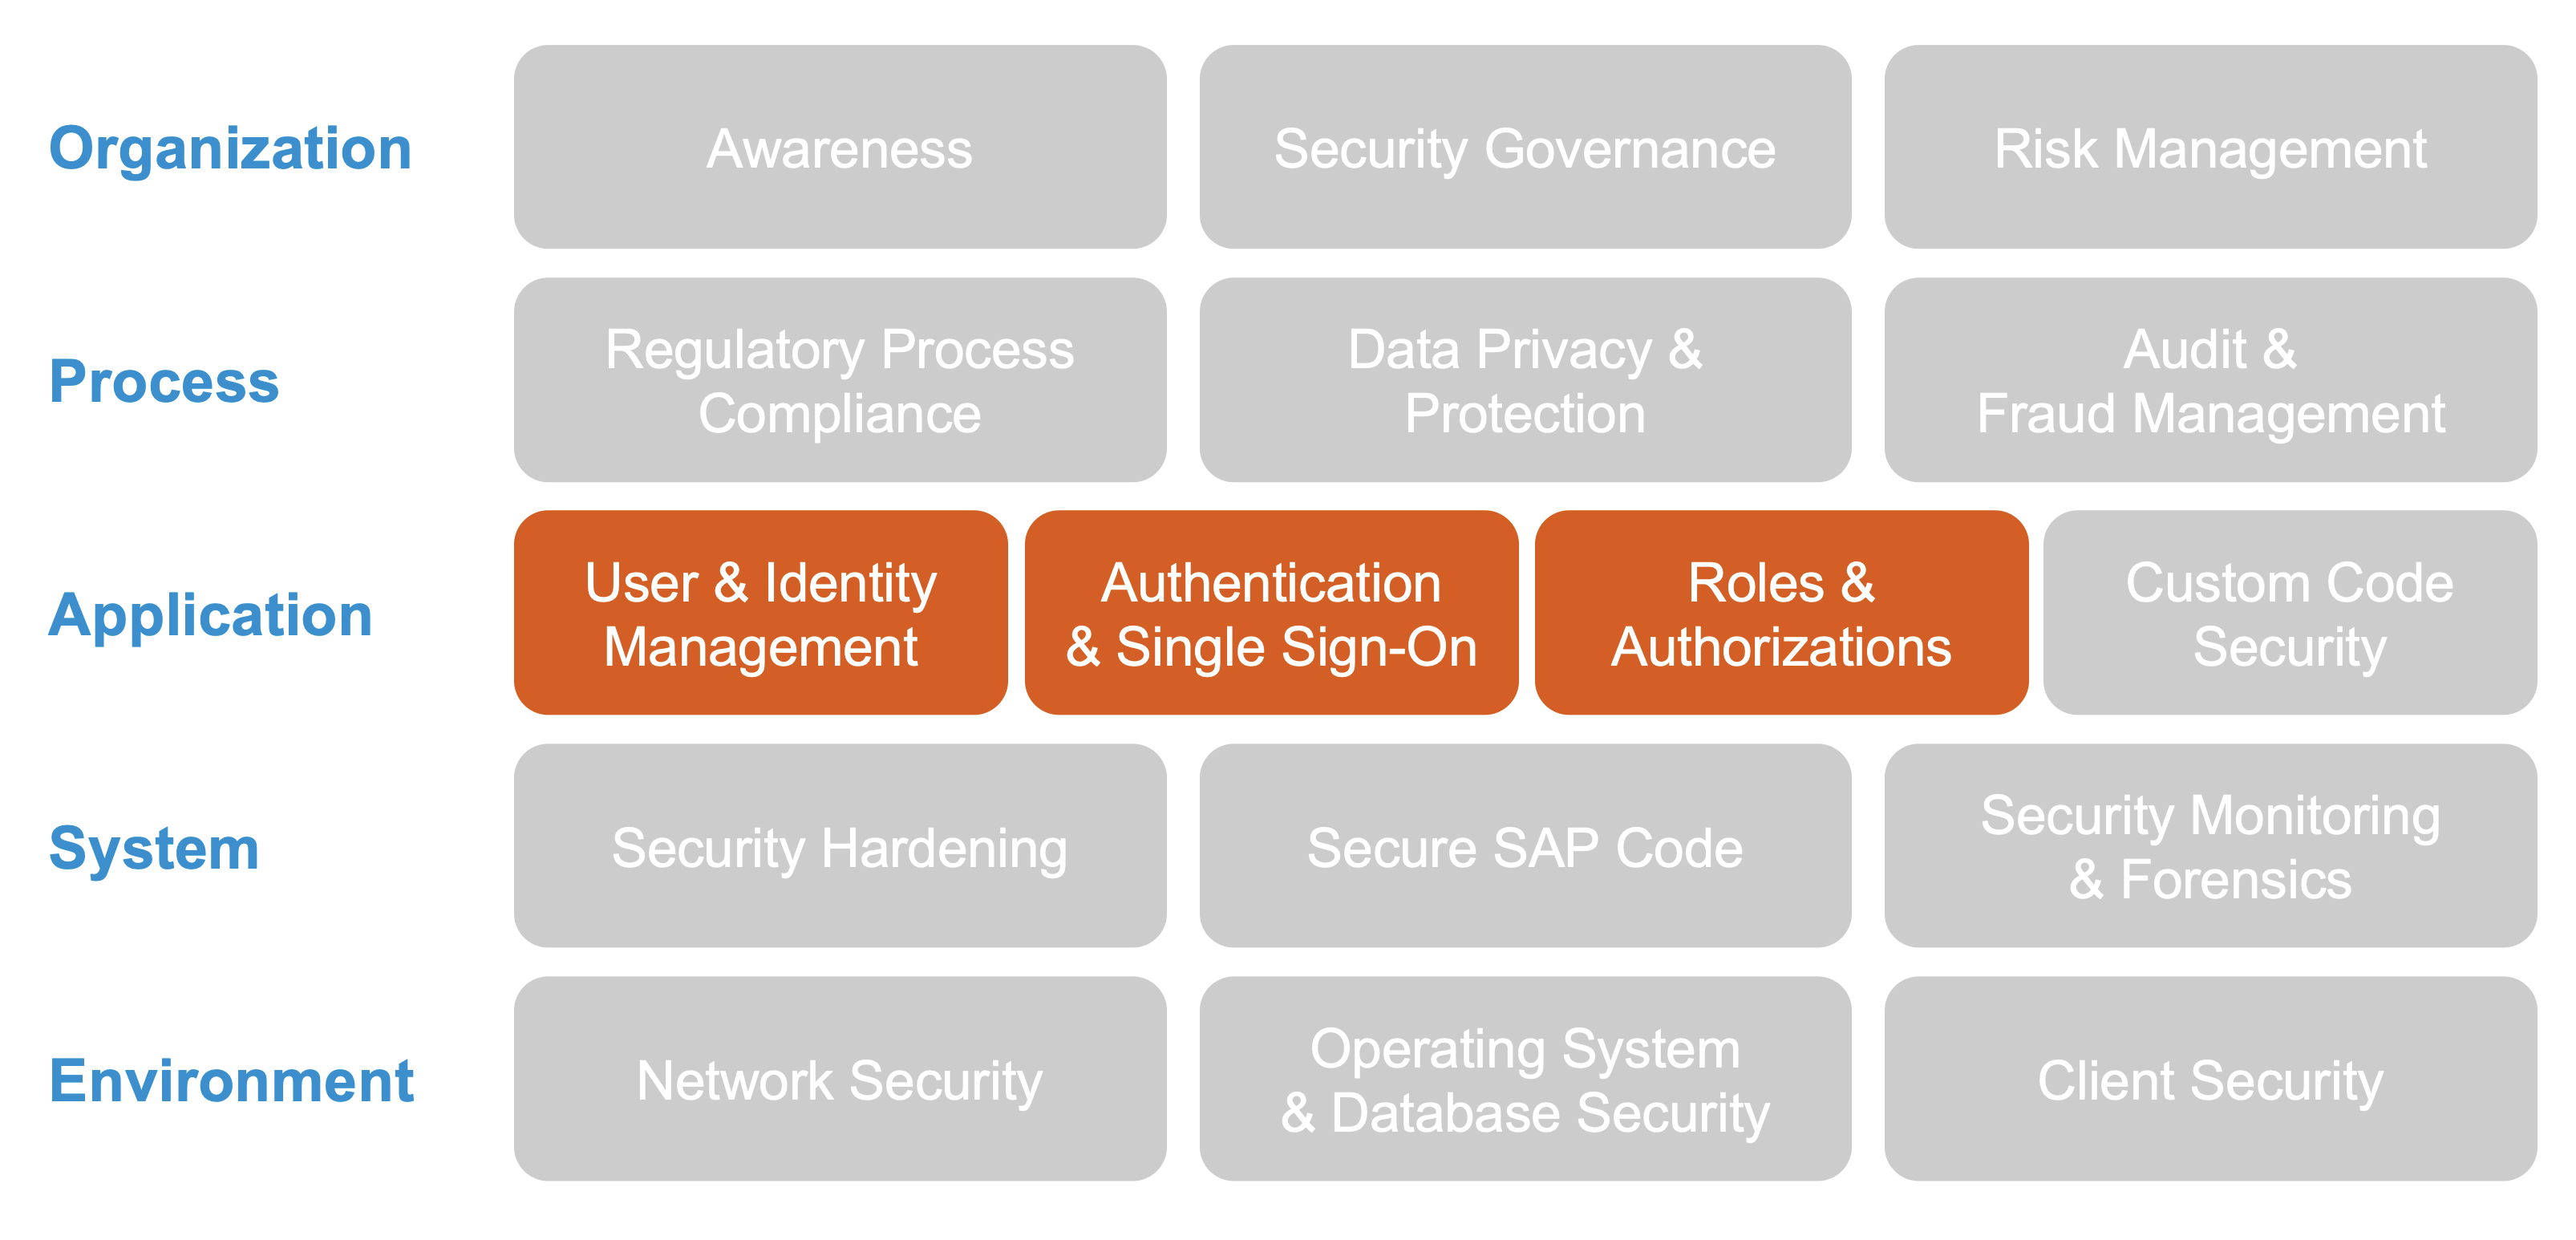 Figure%201%3A%20SAP%20Secure%20Operations%20Map%20-%20Identity%20Access%20Management